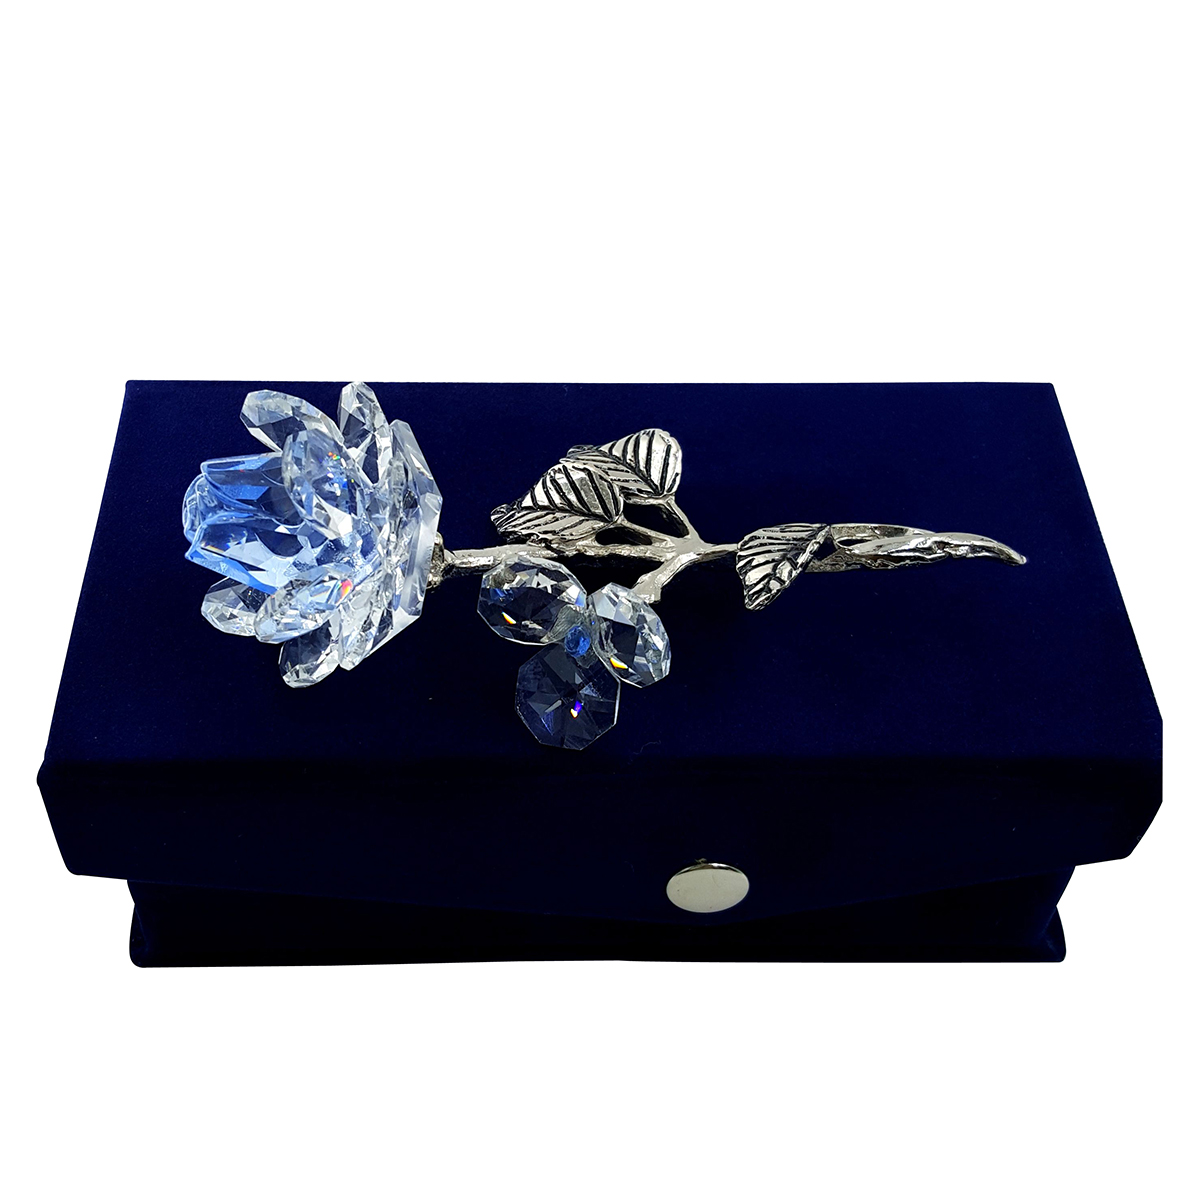 Crystal Milano Rose Light Blue - NOW IN HANDMADE VELVET BOX